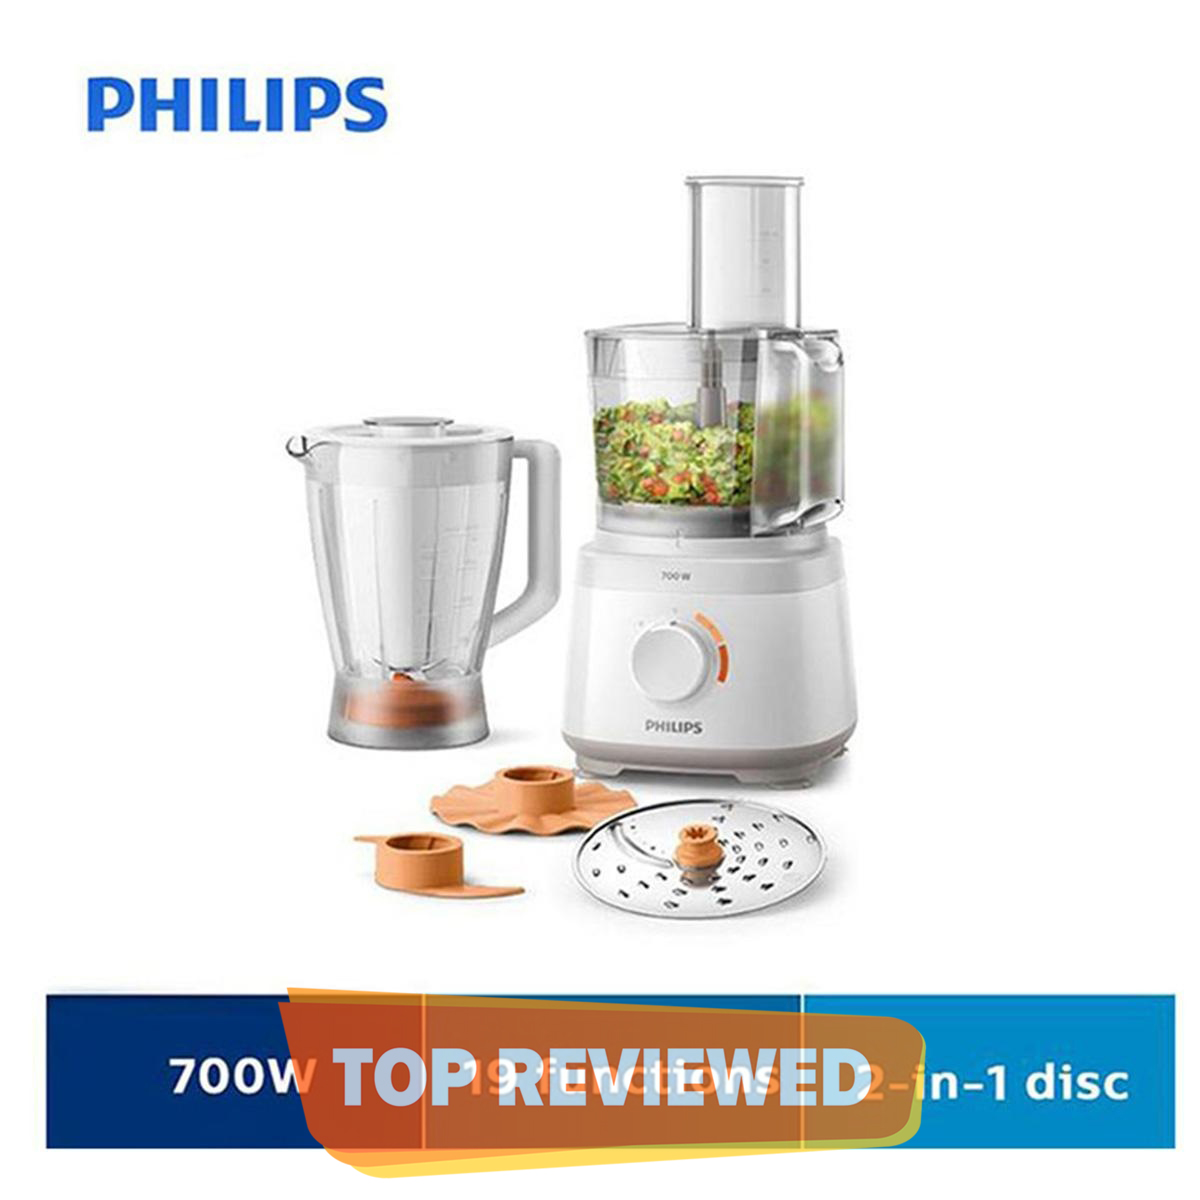 Philips Food Processor - Hr7320/00 - 19 Functions